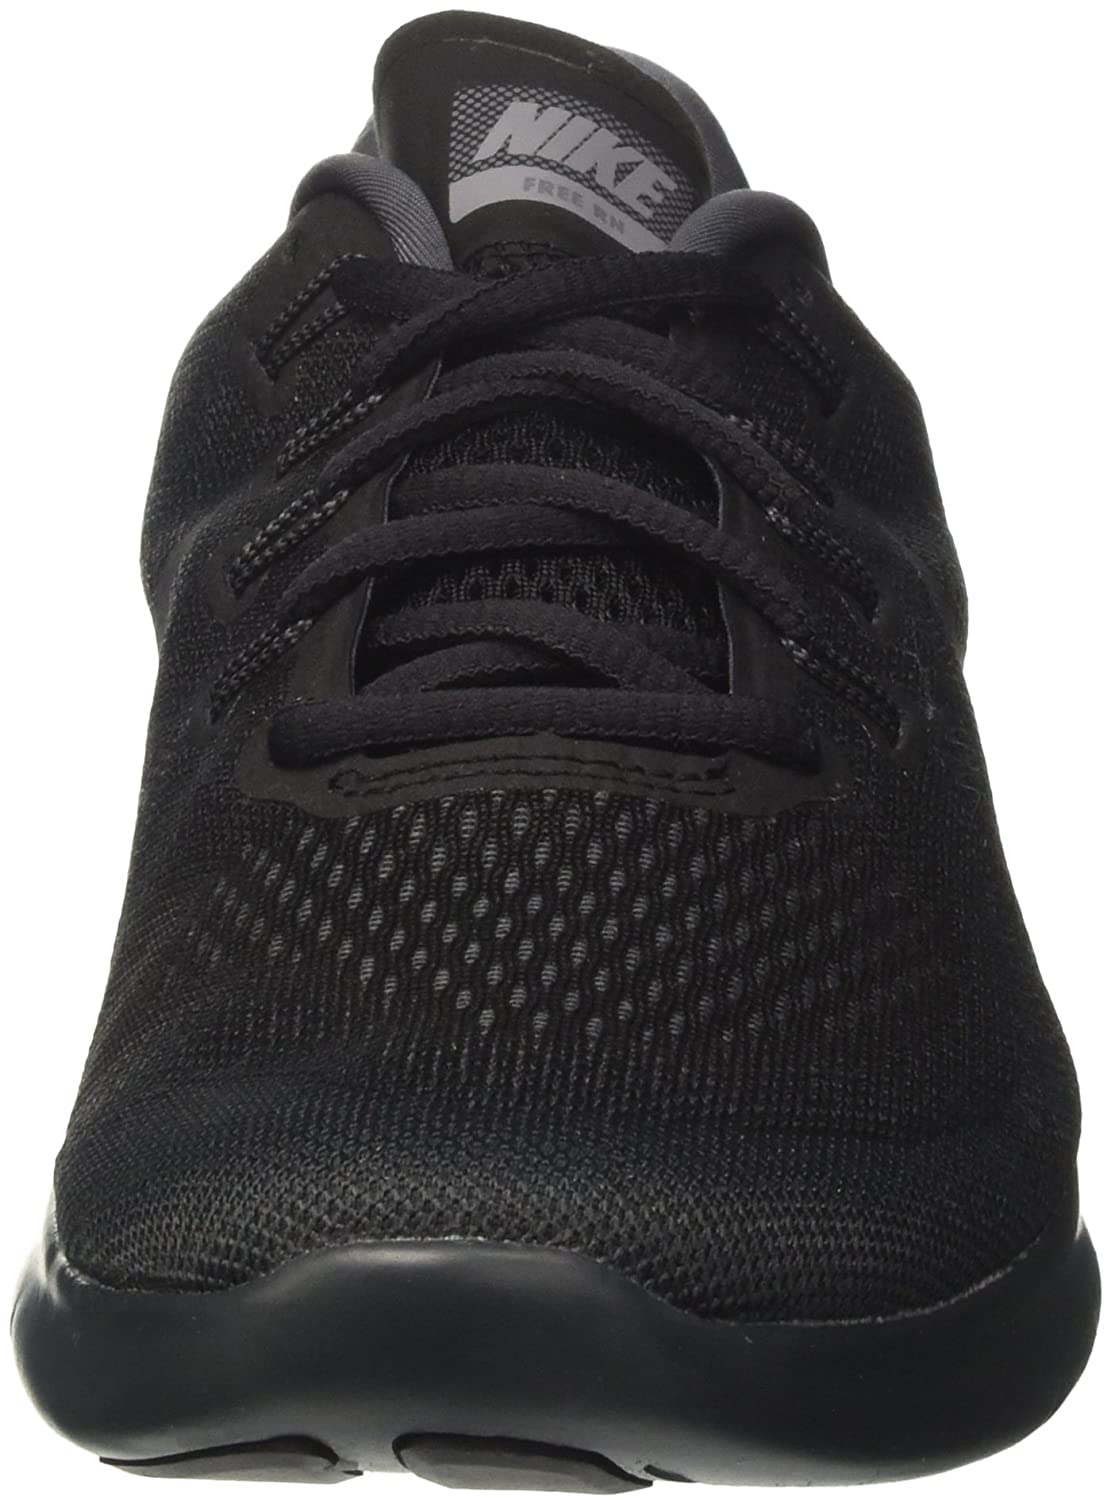 the best attitude a8622 a9aad Nike Women s s Free Rn 2017 Running Shoes  Amazon.co.uk  Shoes   Bags